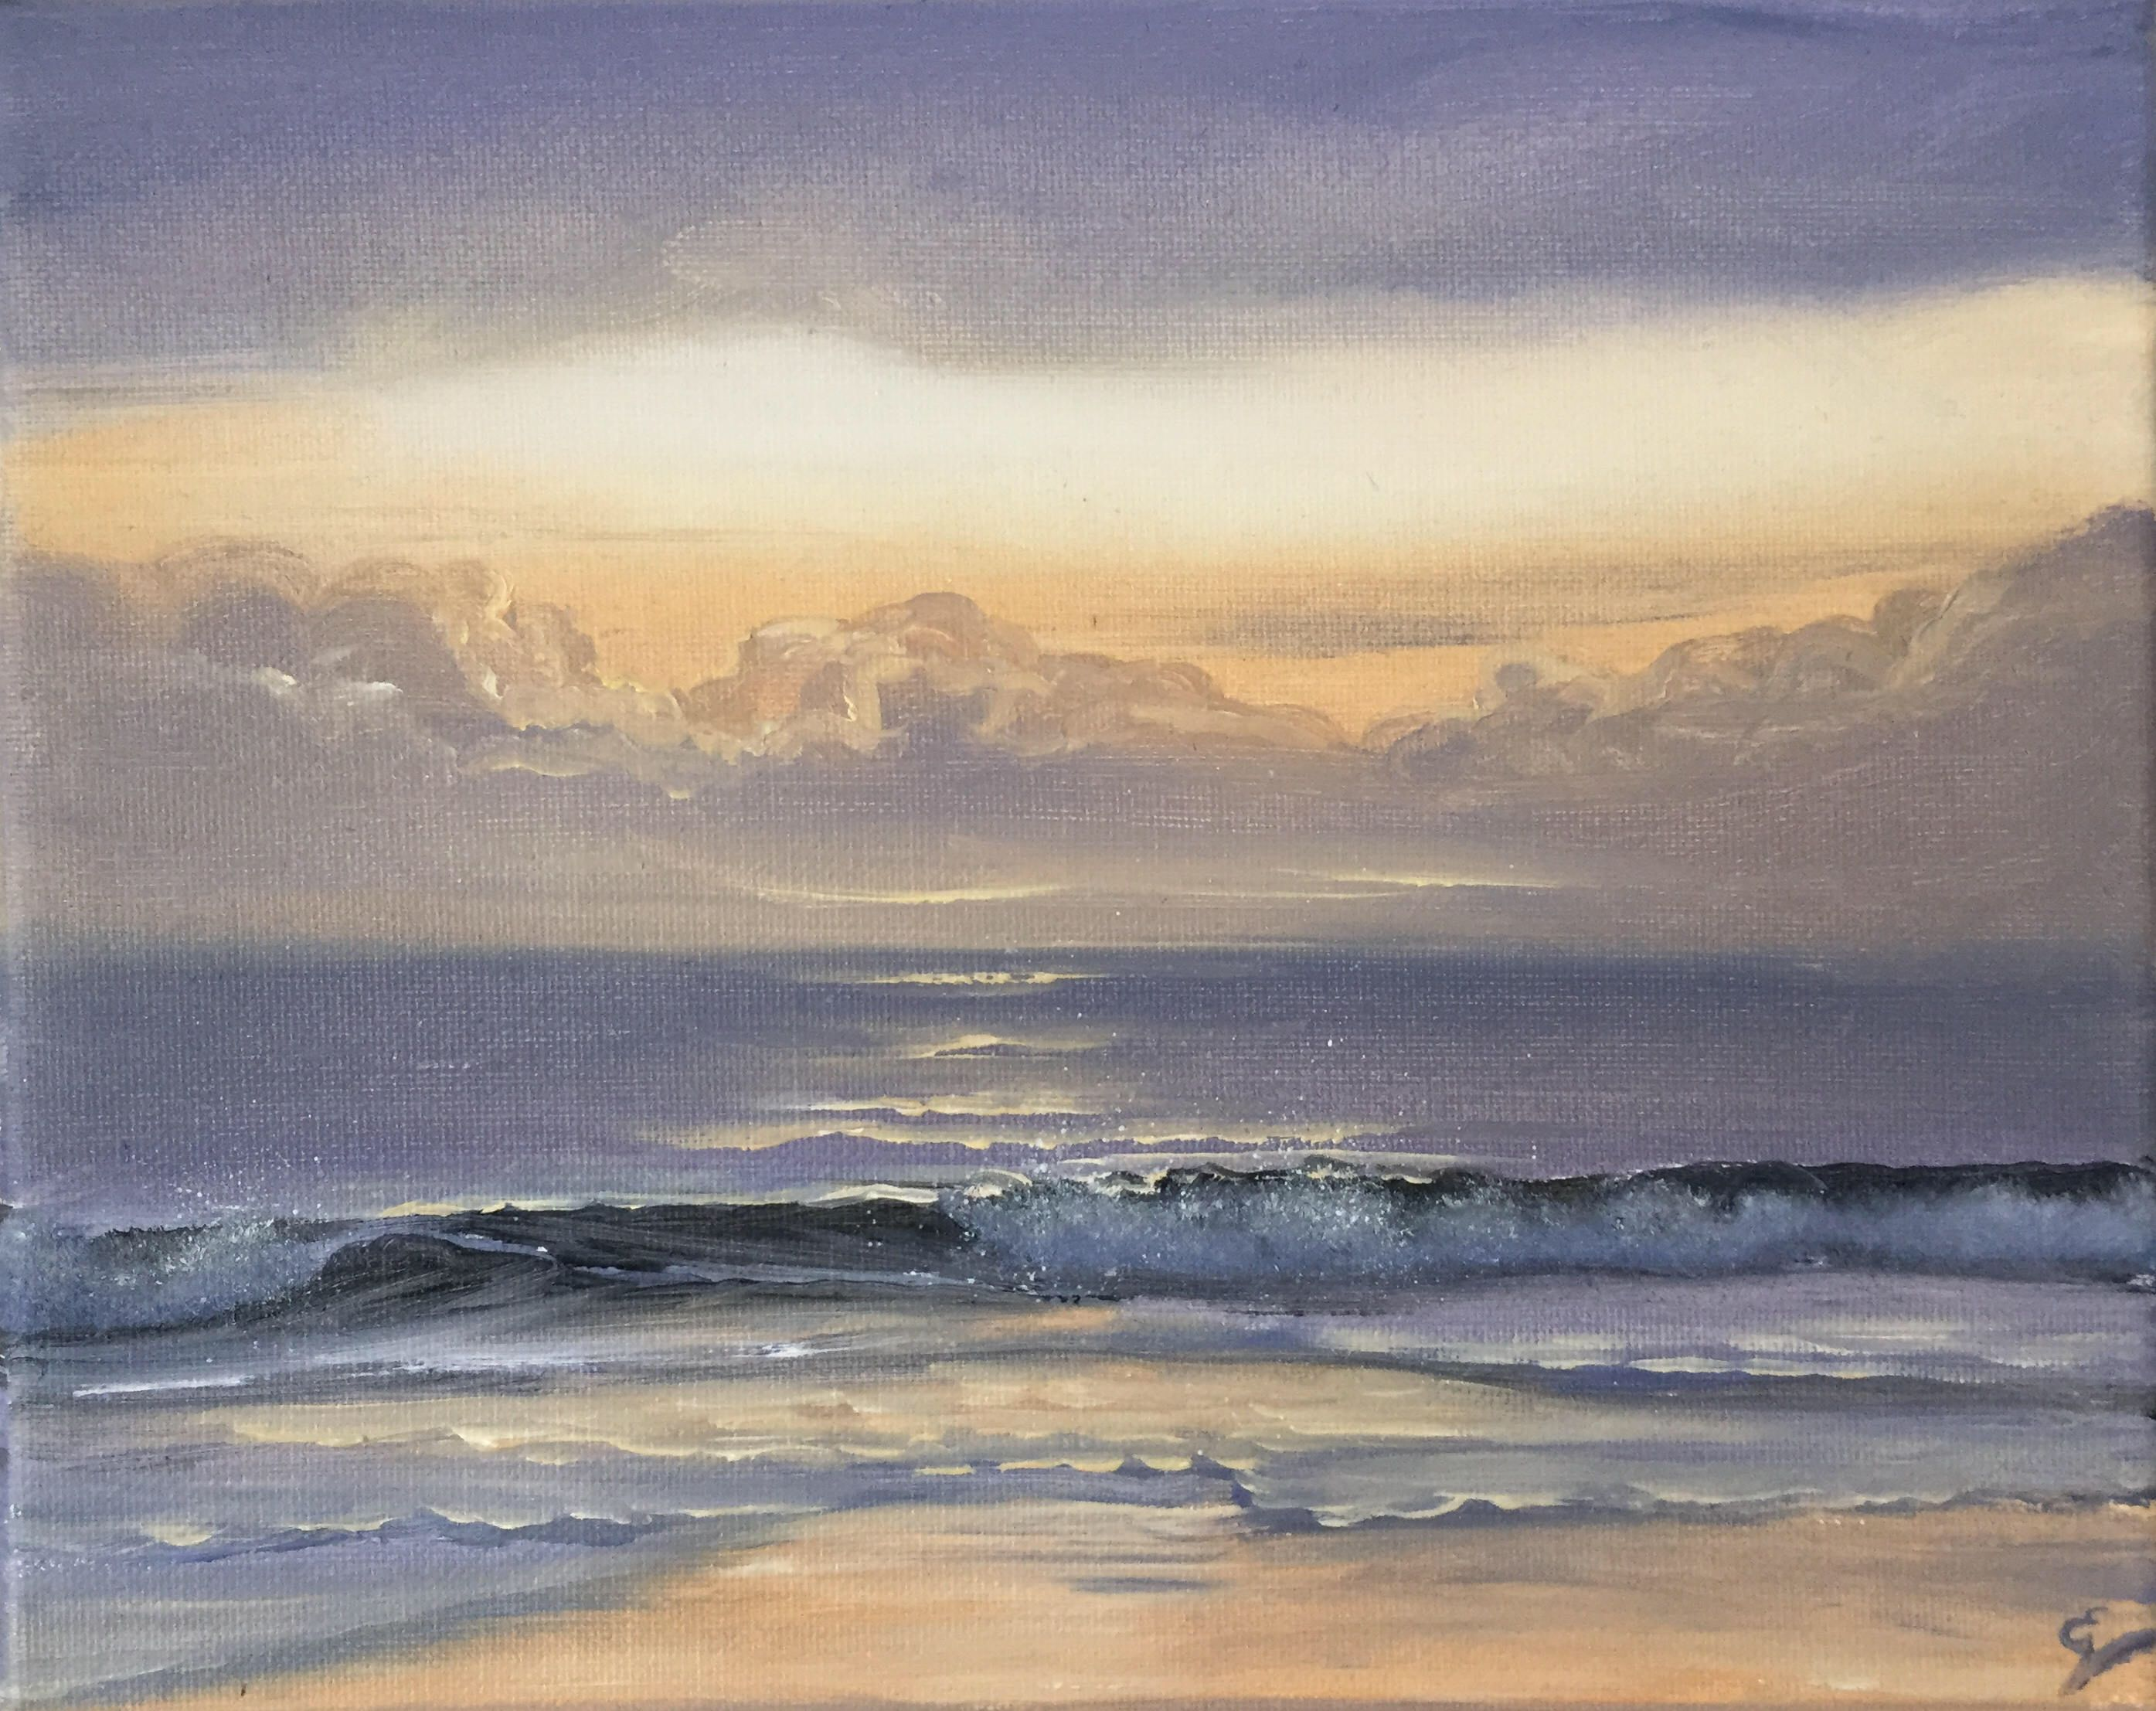 A Personal Favorite From My Etsy Shop Https Www Etsy Com Listing 588930371 Sunrise Painting Coastal Landscape Ocean Painting Sunrise Painting Beach Painting